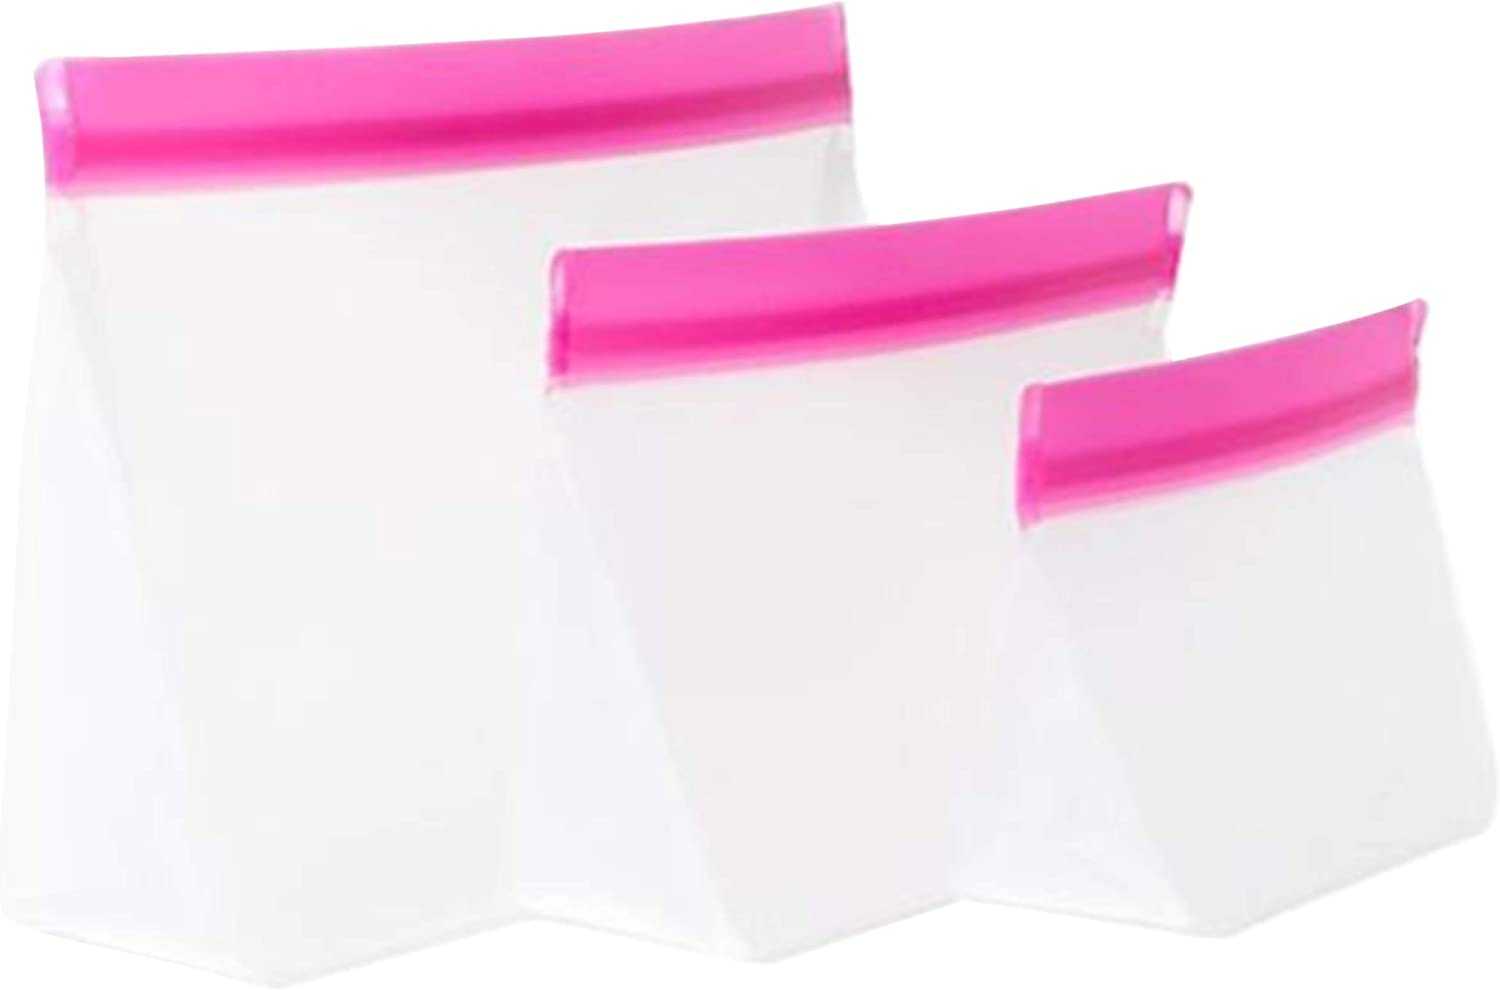 mumi Reusable Zip Up Bags | Food Storage Bags, Travel Organizer | Airtight and Leak-proof Seal | Expandable Base | Set of 3 Reusable Bags (10 x 7, 8 x 5, 6 x 4 inches) (Pink)